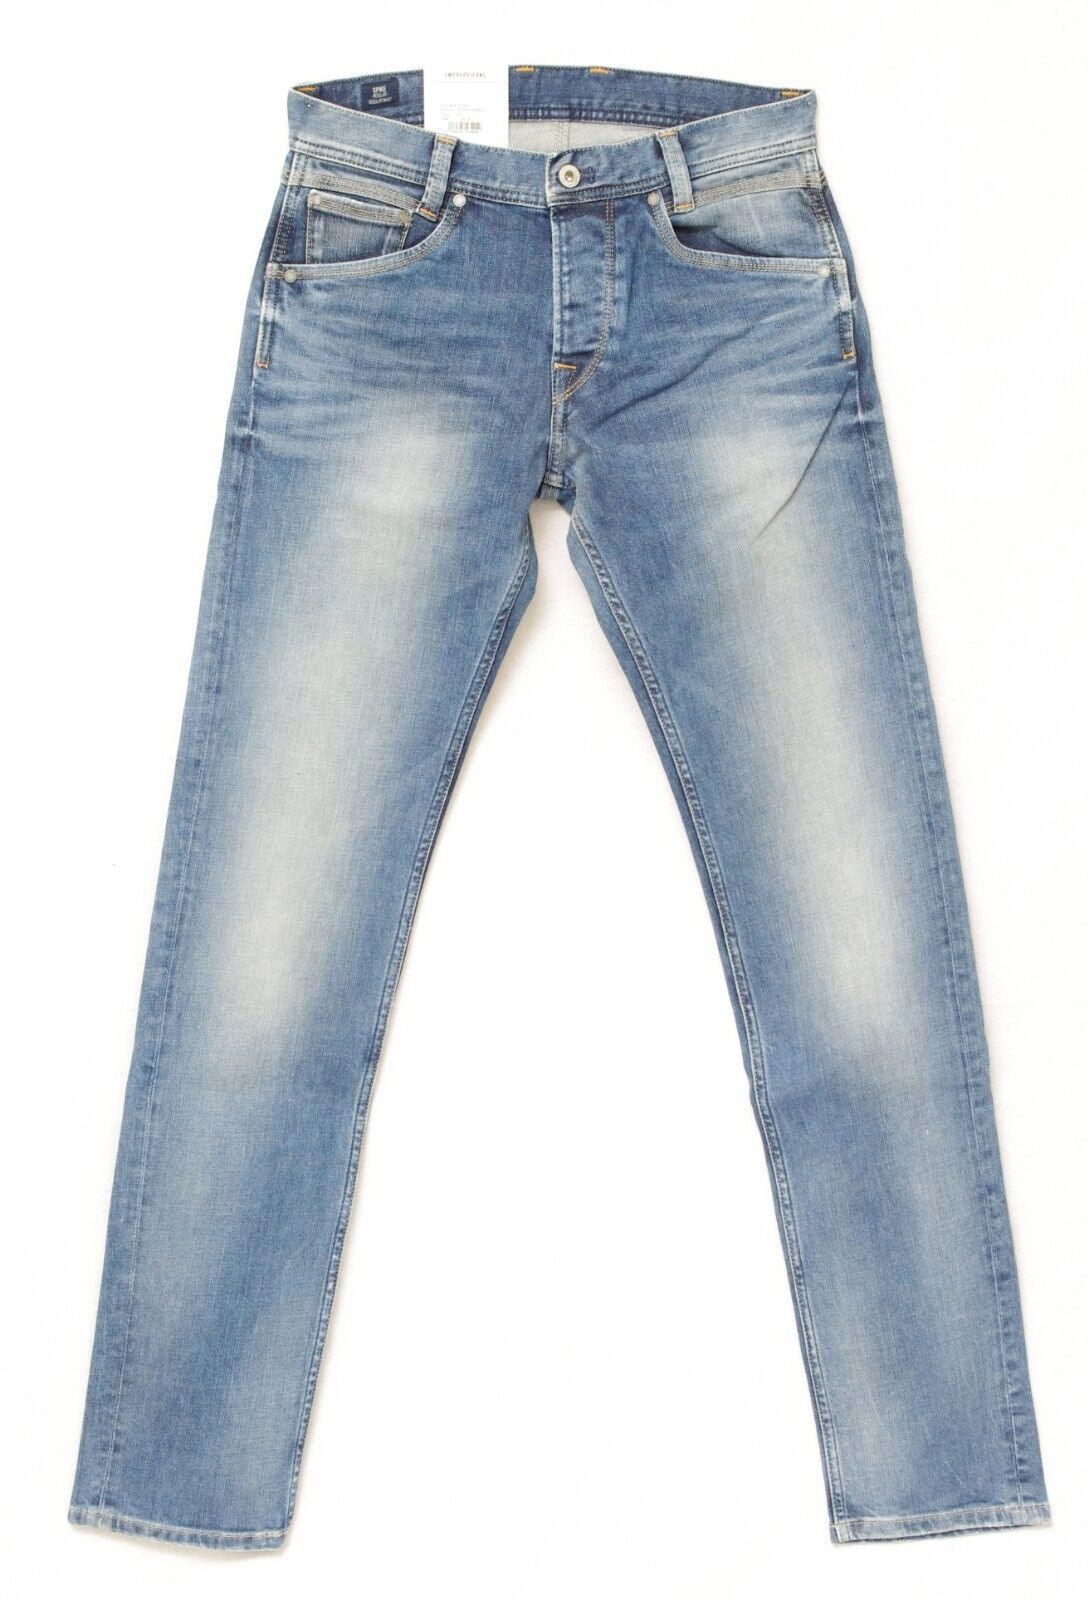 PEPE JEANS SPIKE jean regular fit homme blue PM200029M8  Regular Waist W 28 L 34